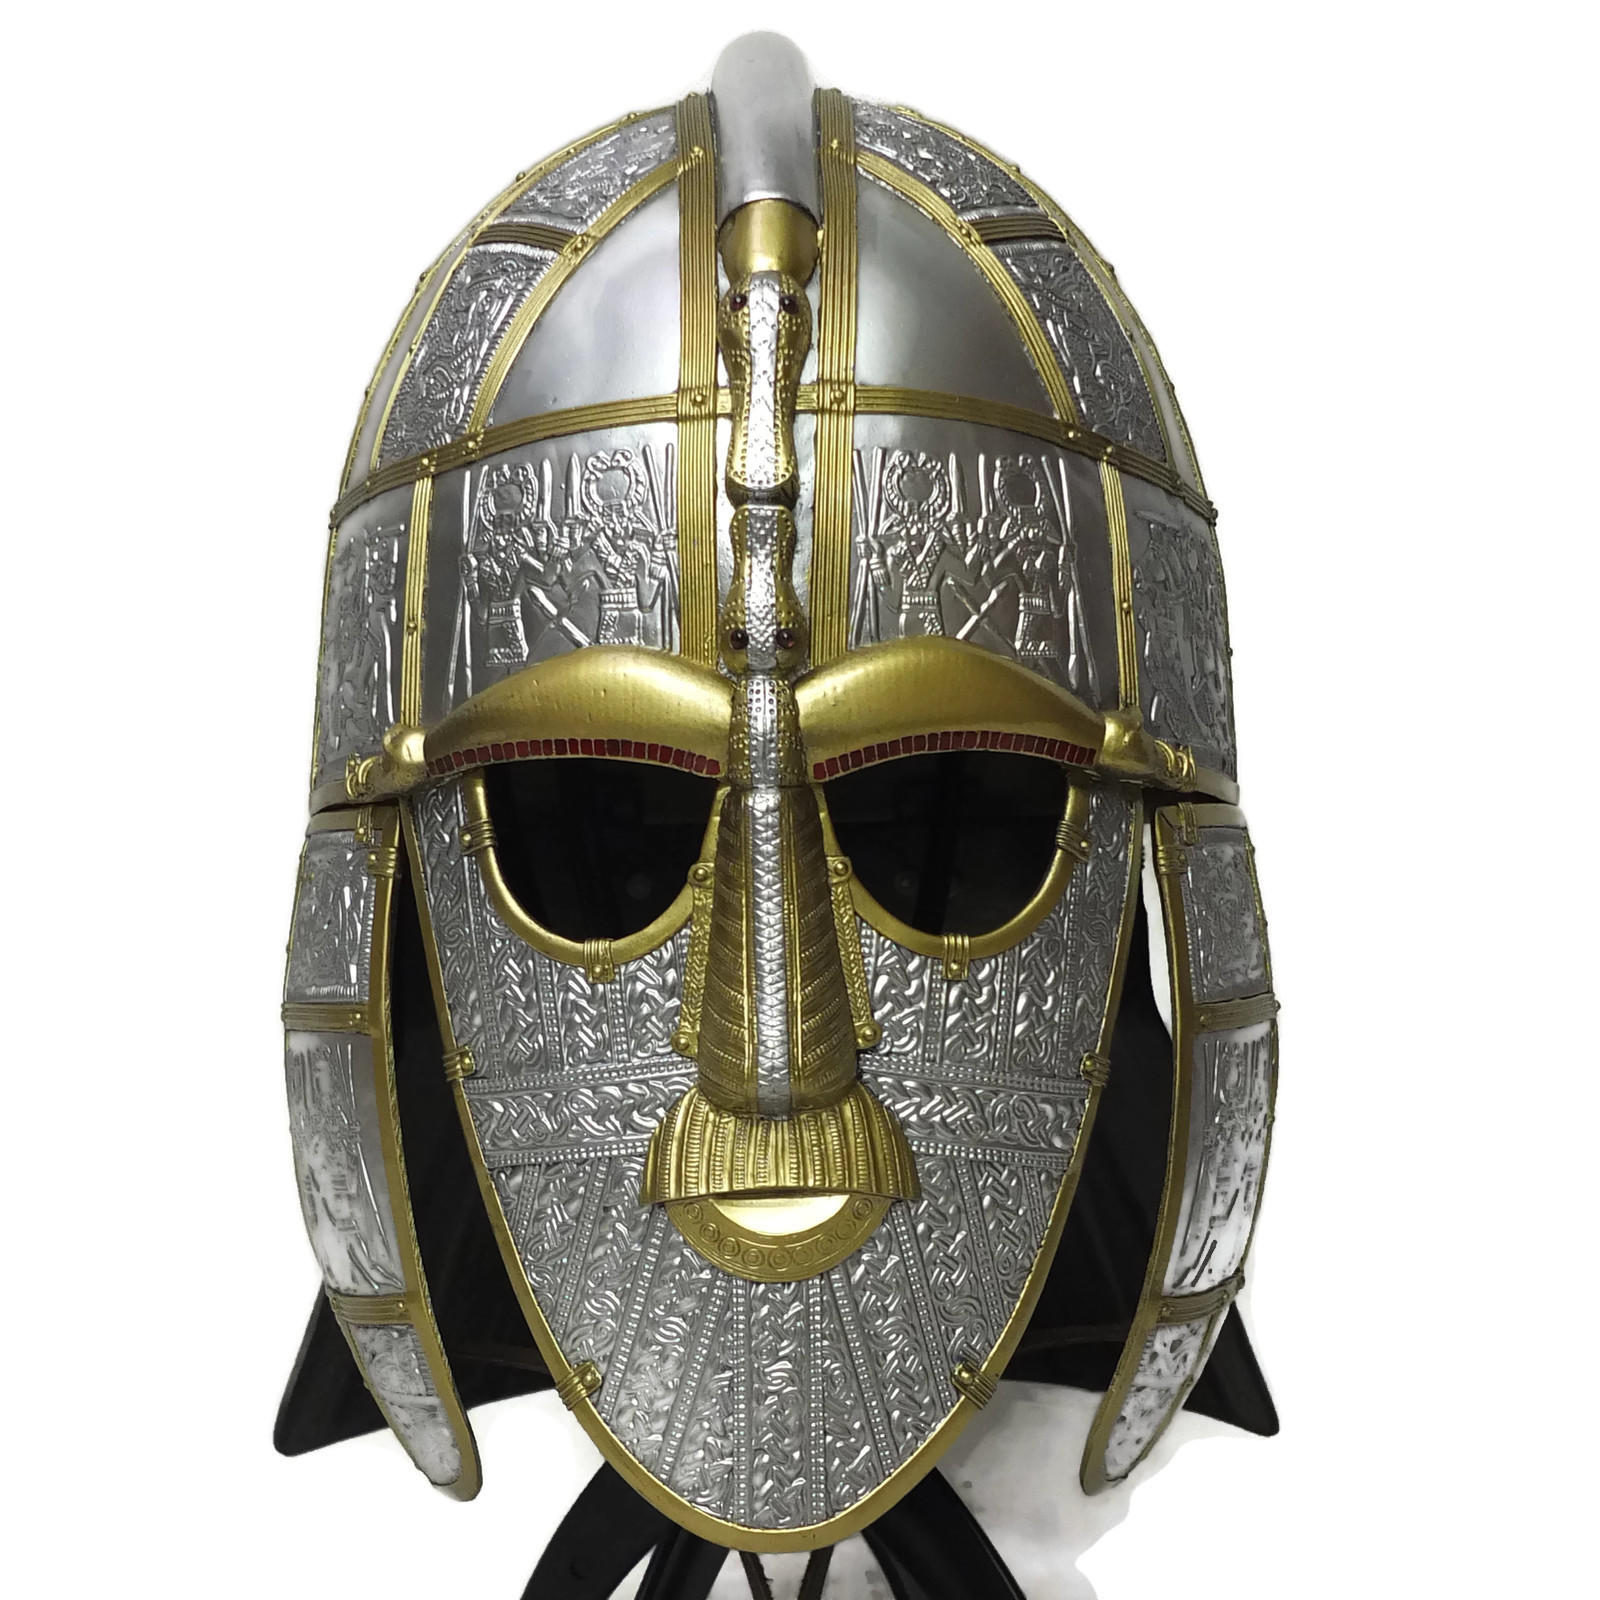 Sutton hoo larp helmet 2 colour